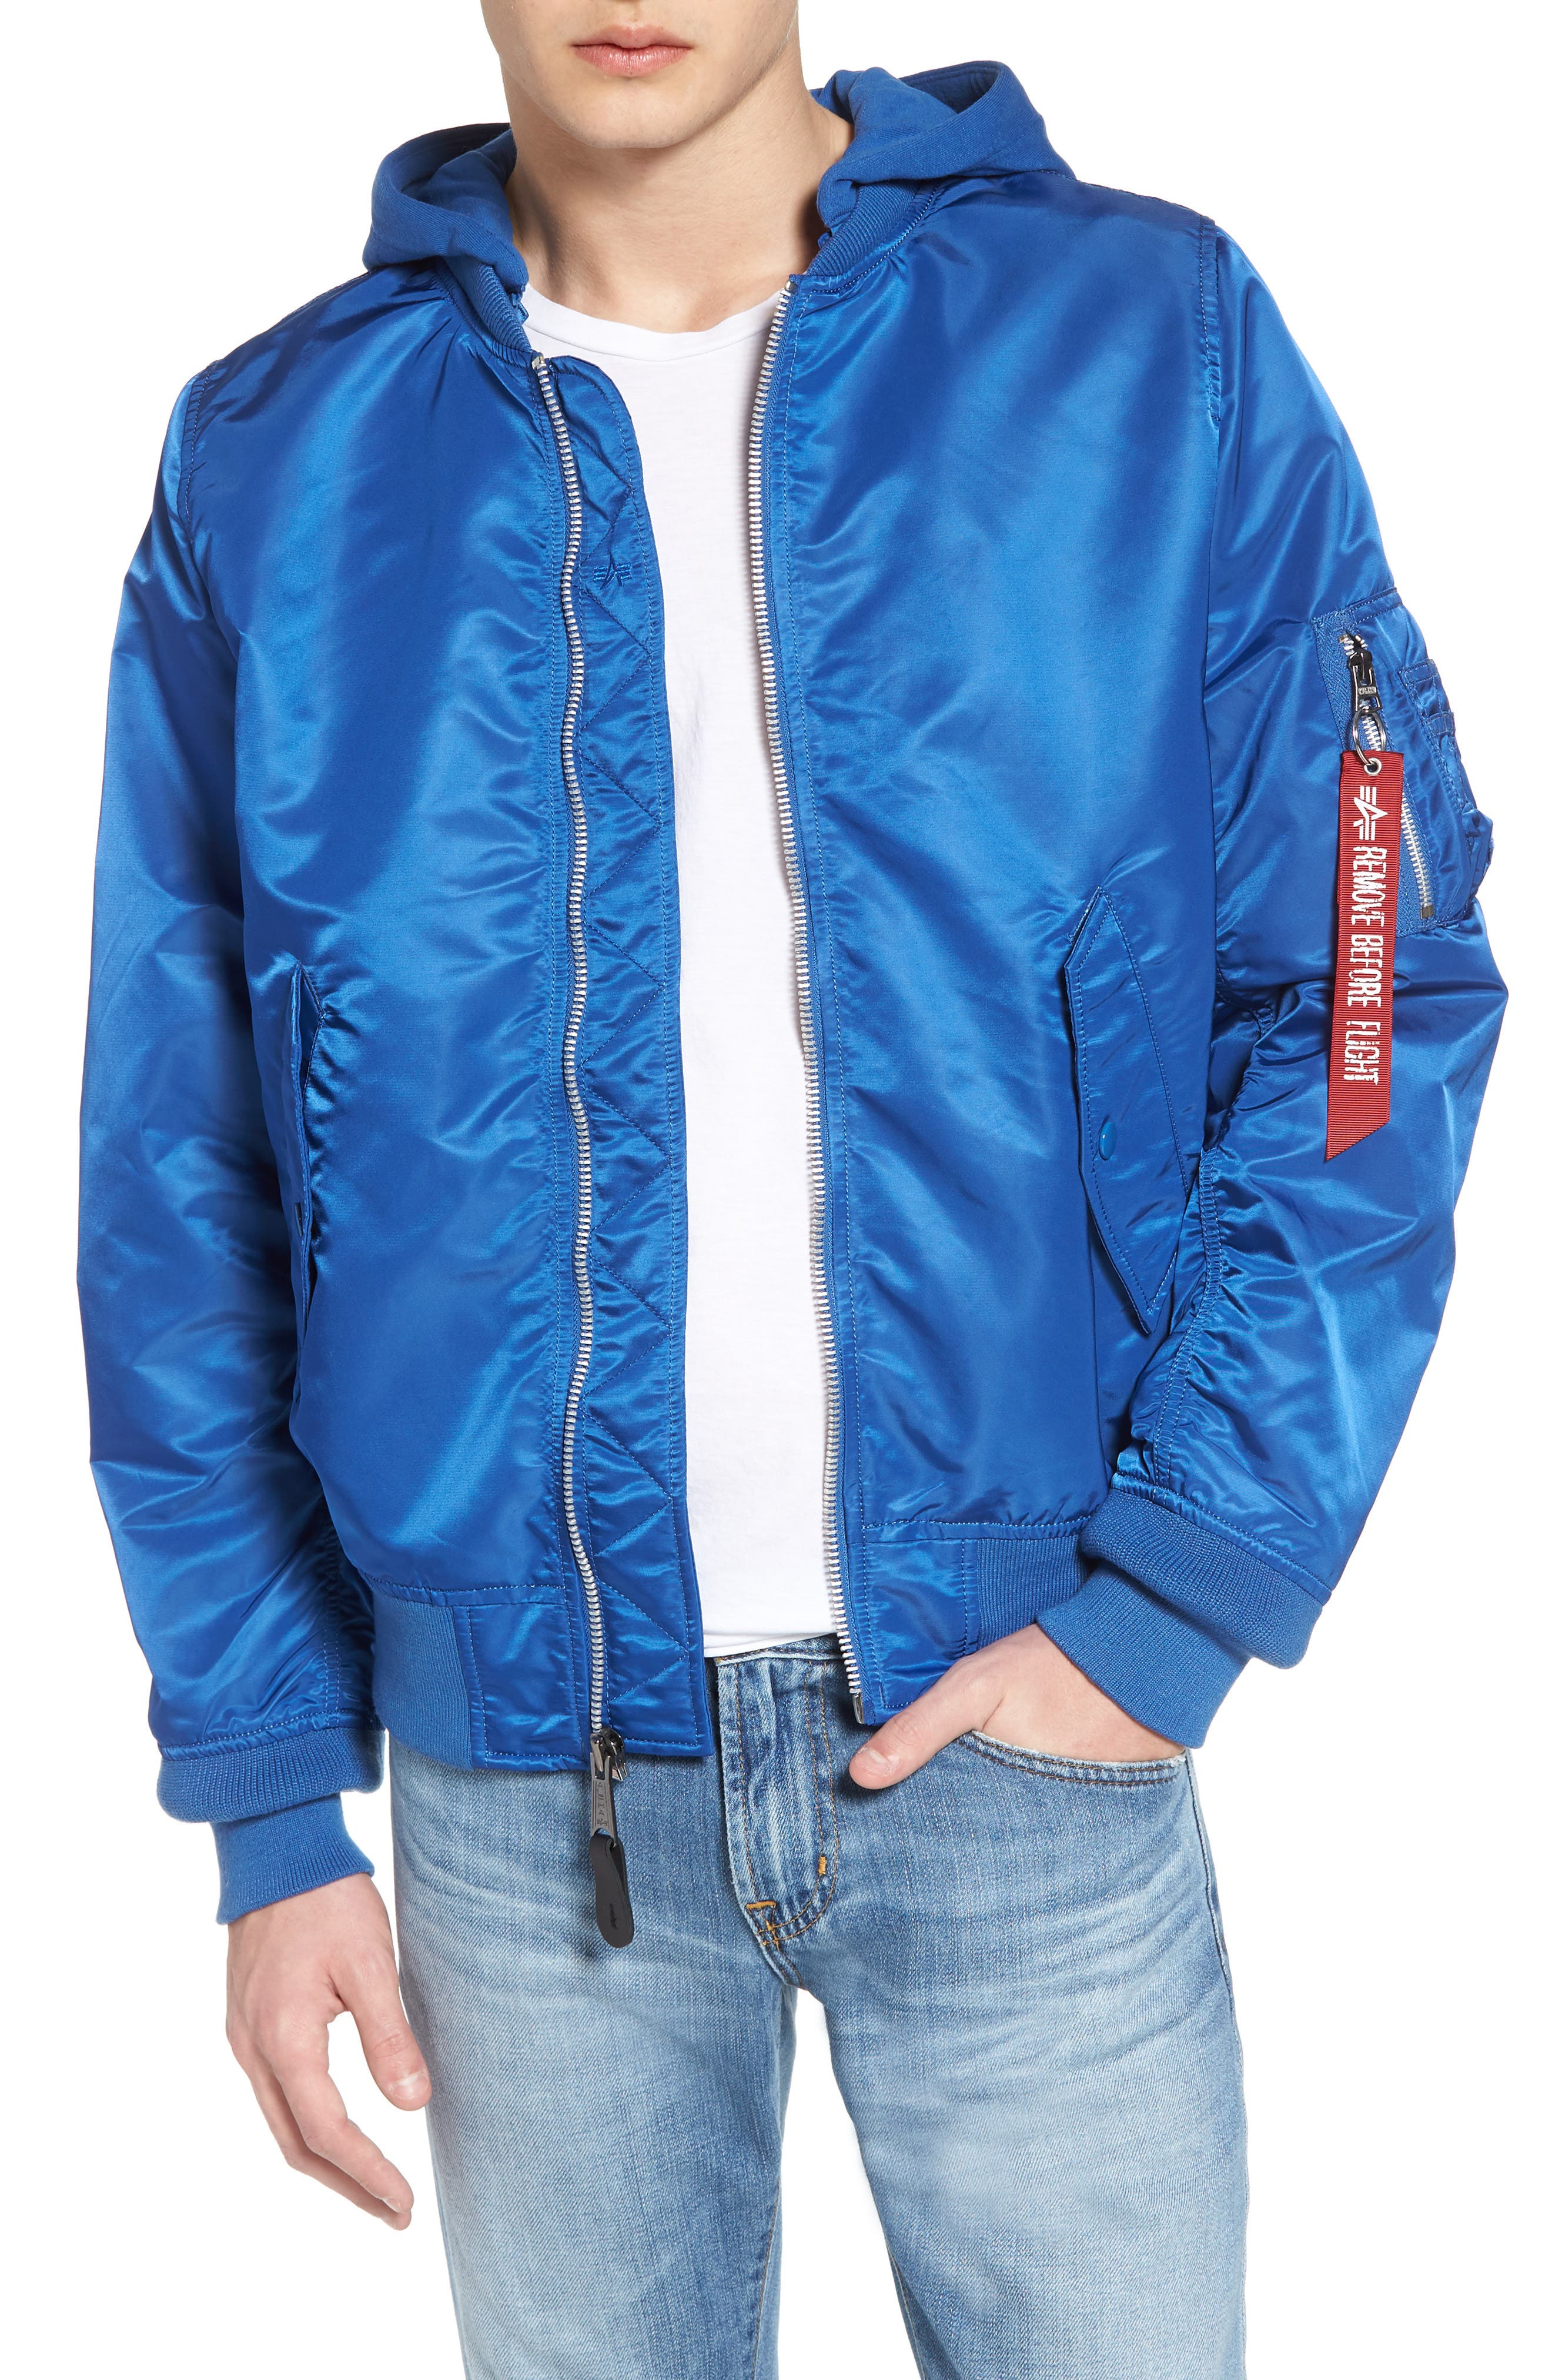 L-2B Natus Water Resistant Flight Jacket,                             Main thumbnail 1, color,                             Pacific Blue